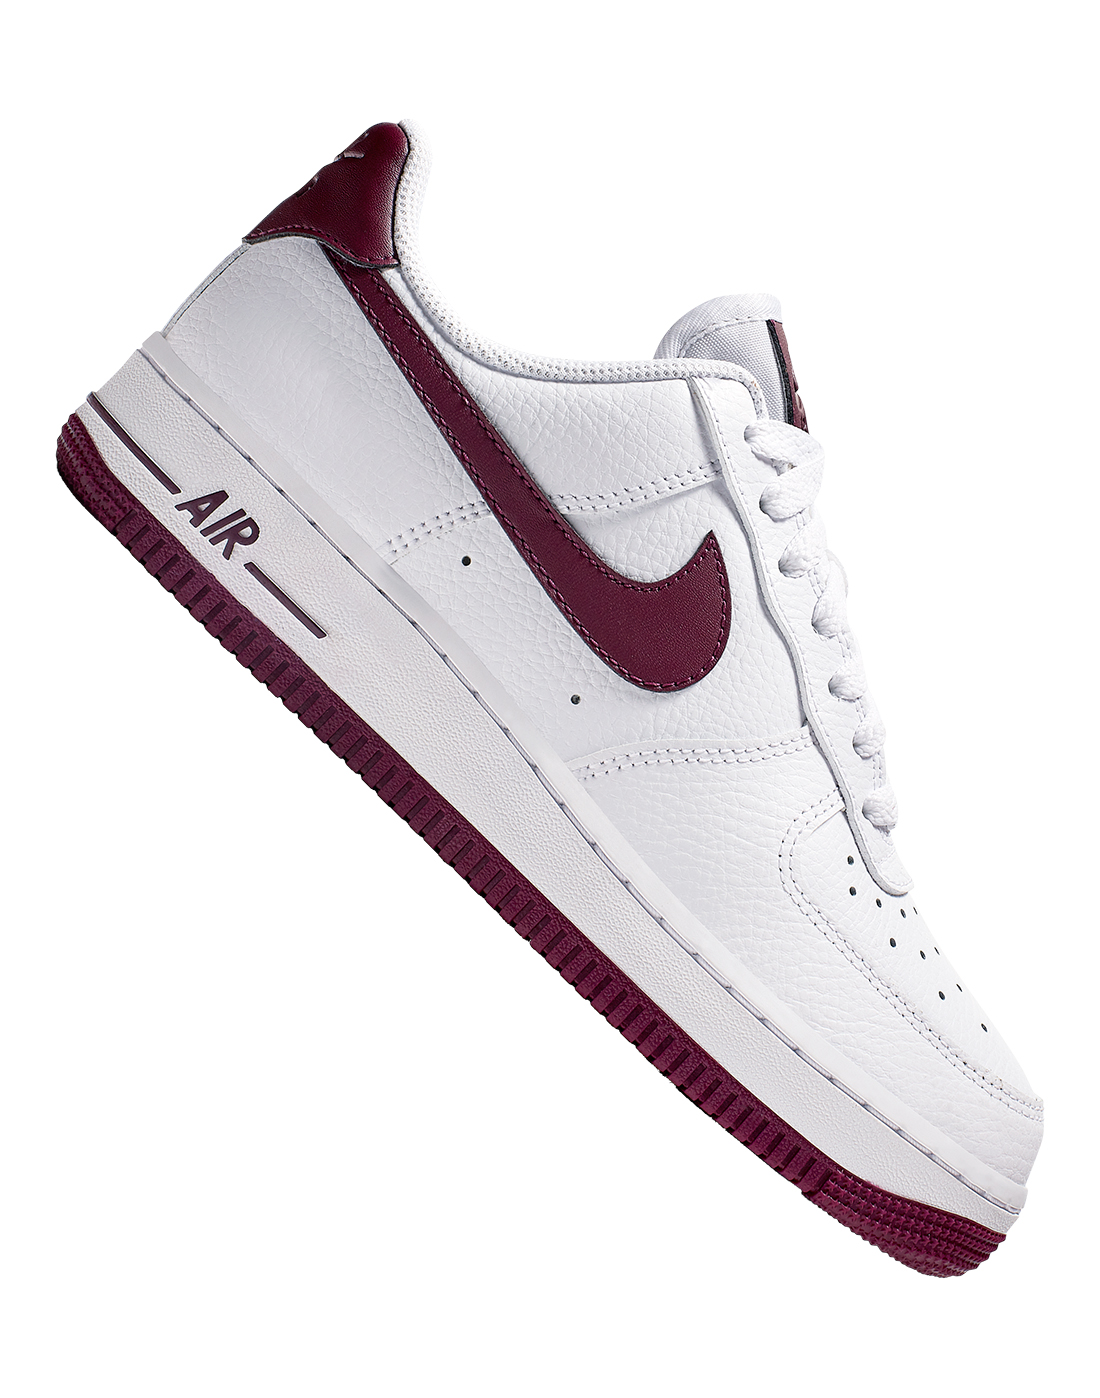 c199a6bfe8 Women's White & Burgundy Nike Air Force 1 | Life Style Sports